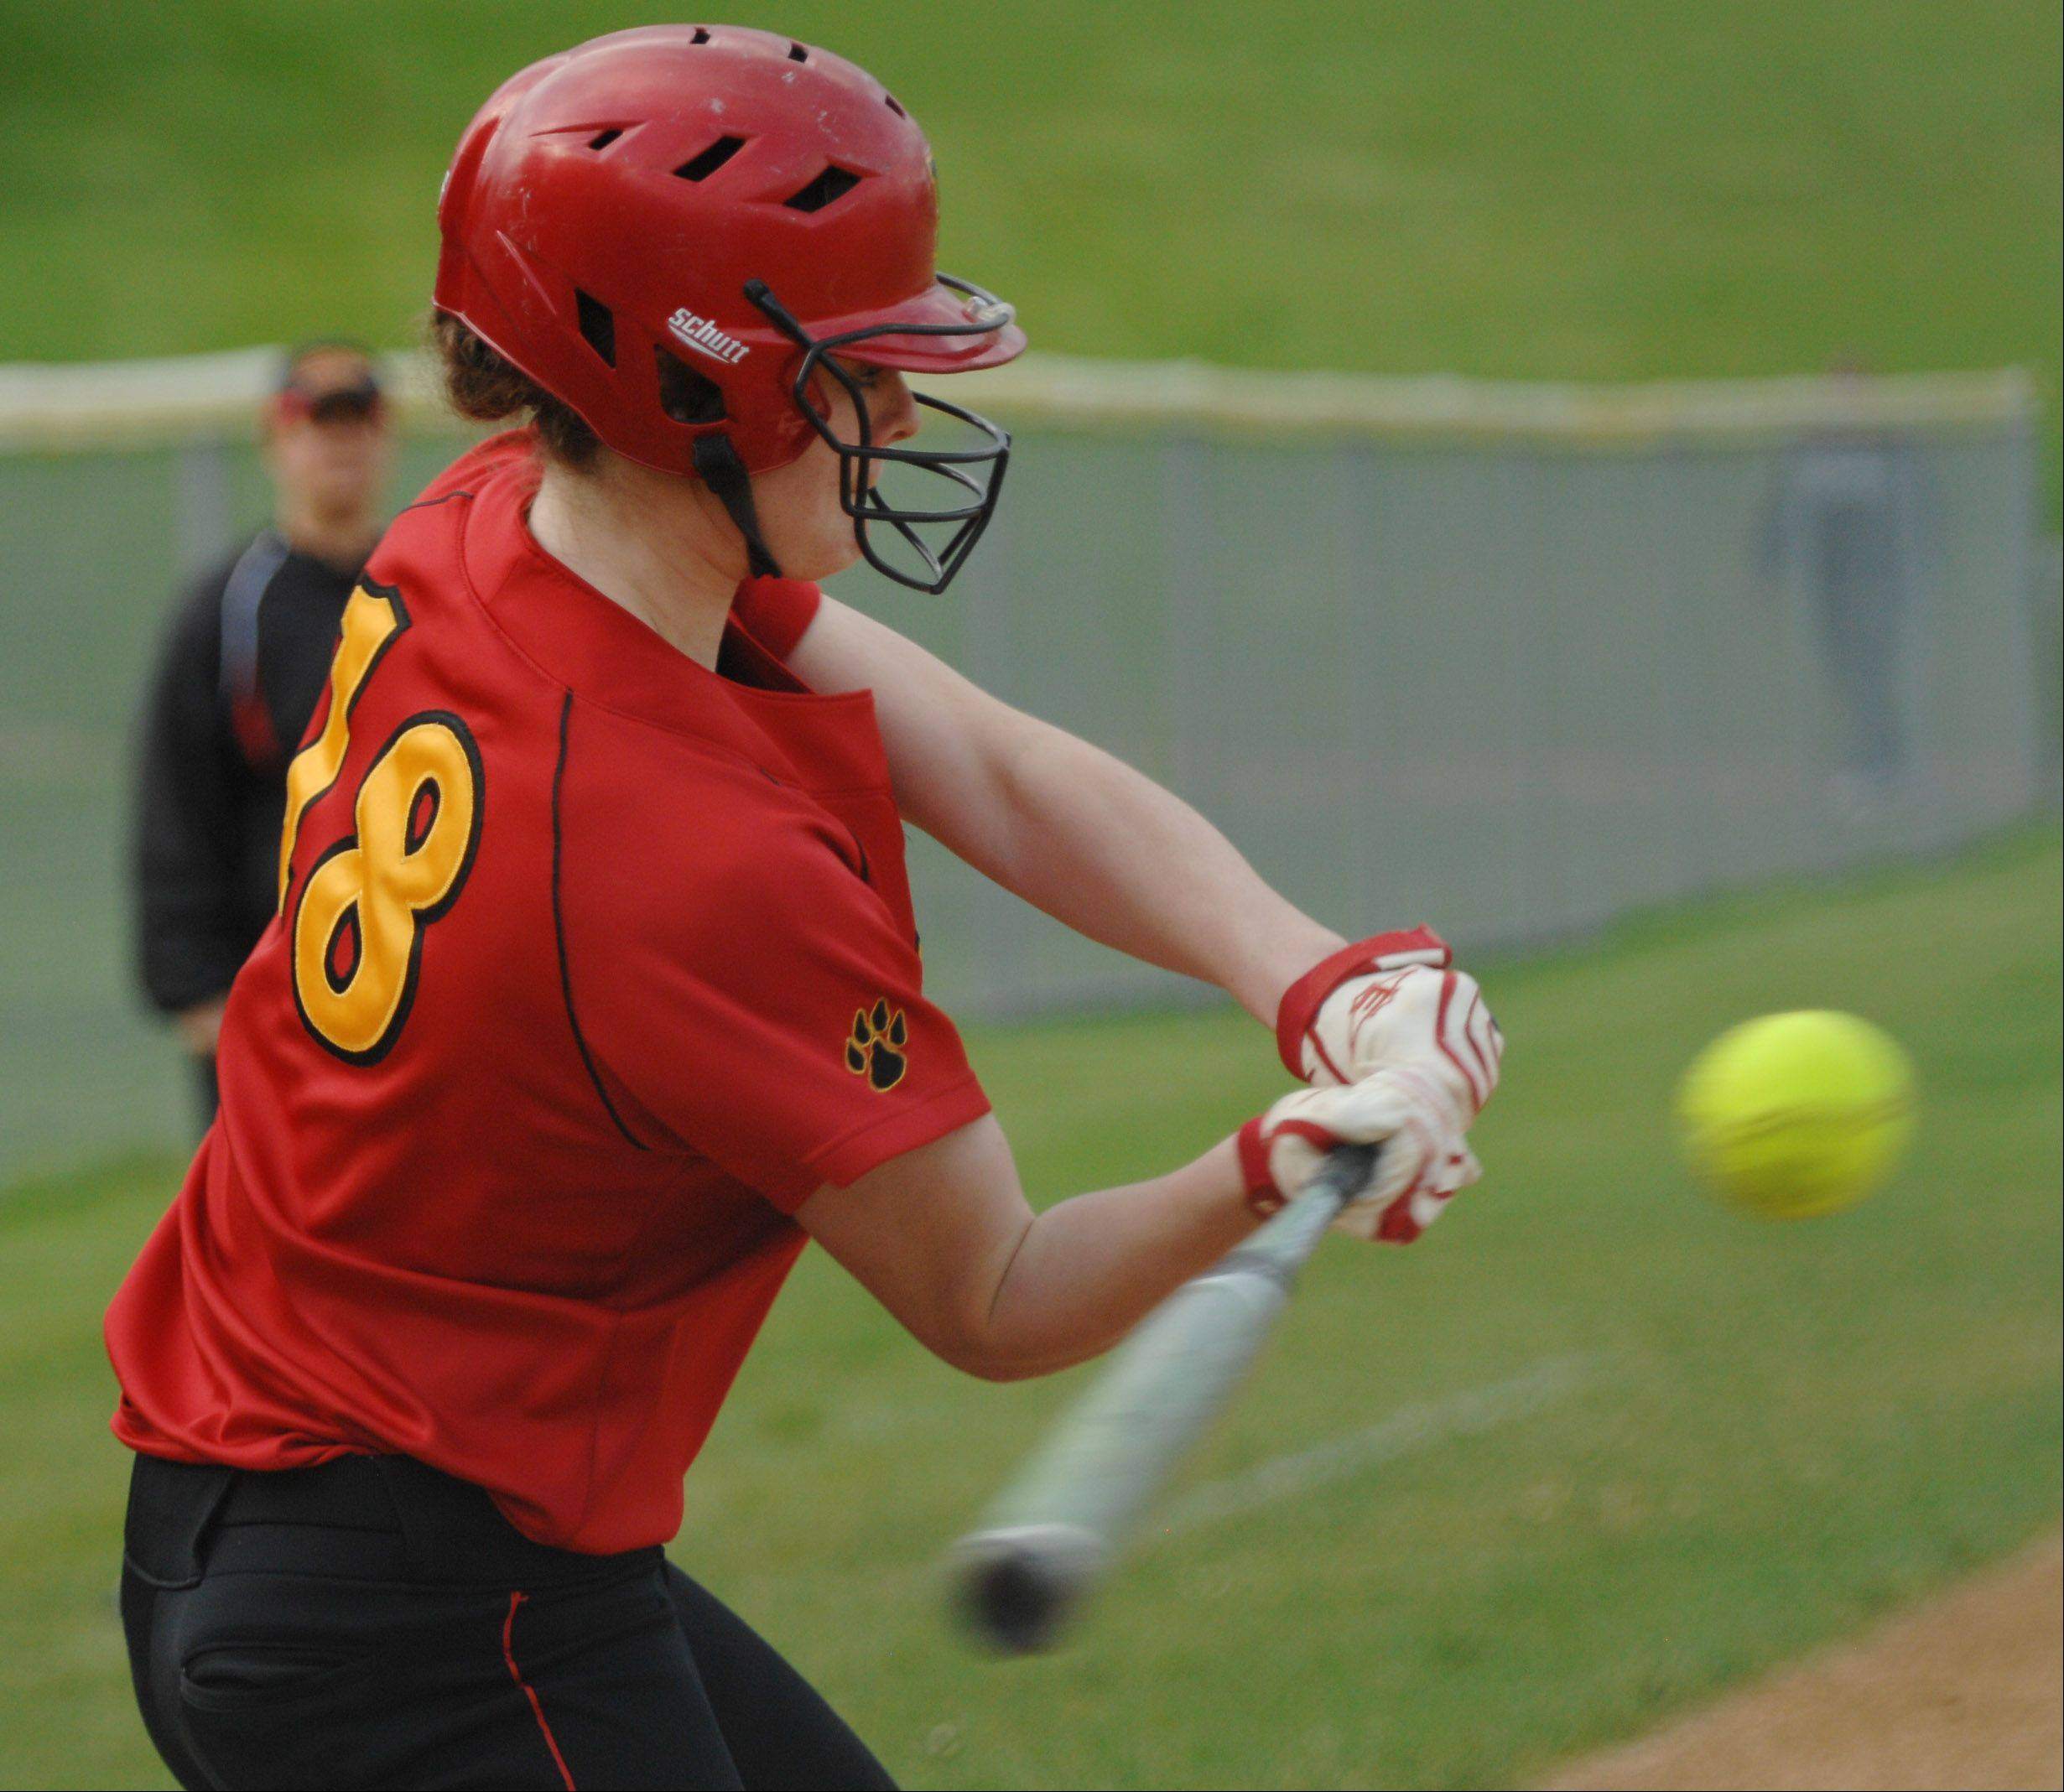 Batavia's Katie Ryan was one of 15 batters to strike out against Elgin's Hannah Perryman Wednesday in Elgin.